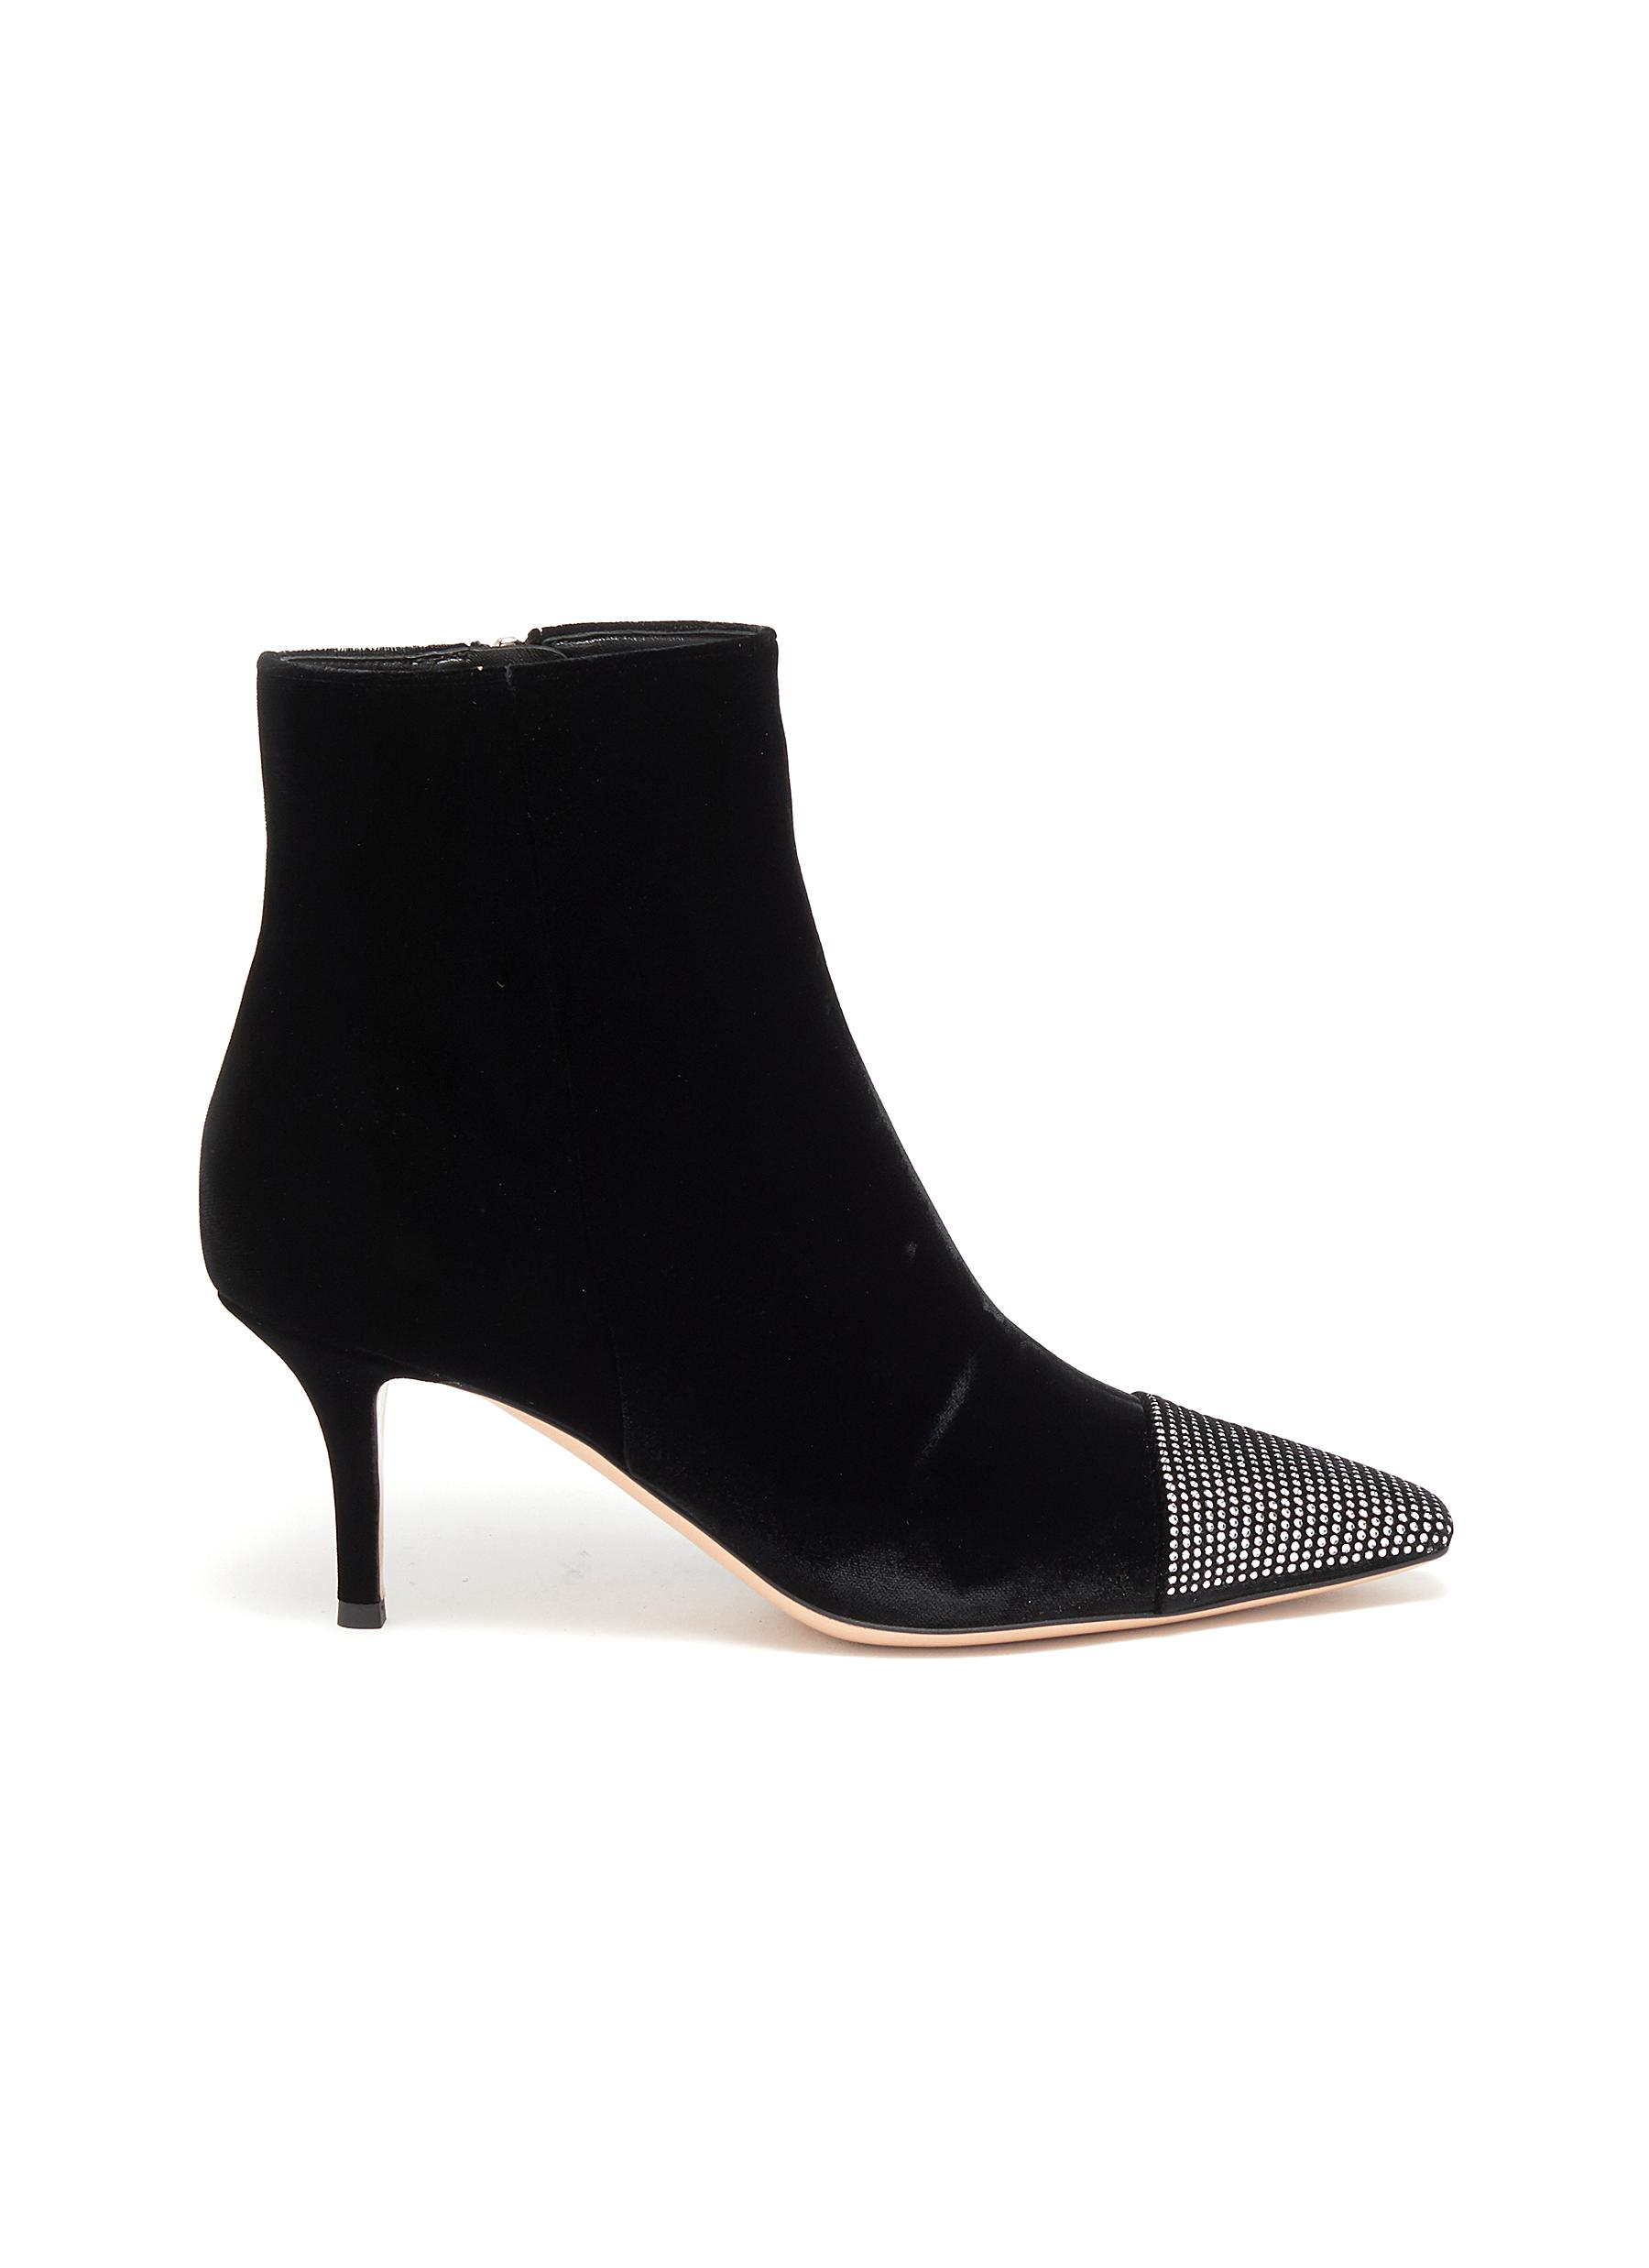 Photo of Gianvito Rossi Shoes Boots online sale